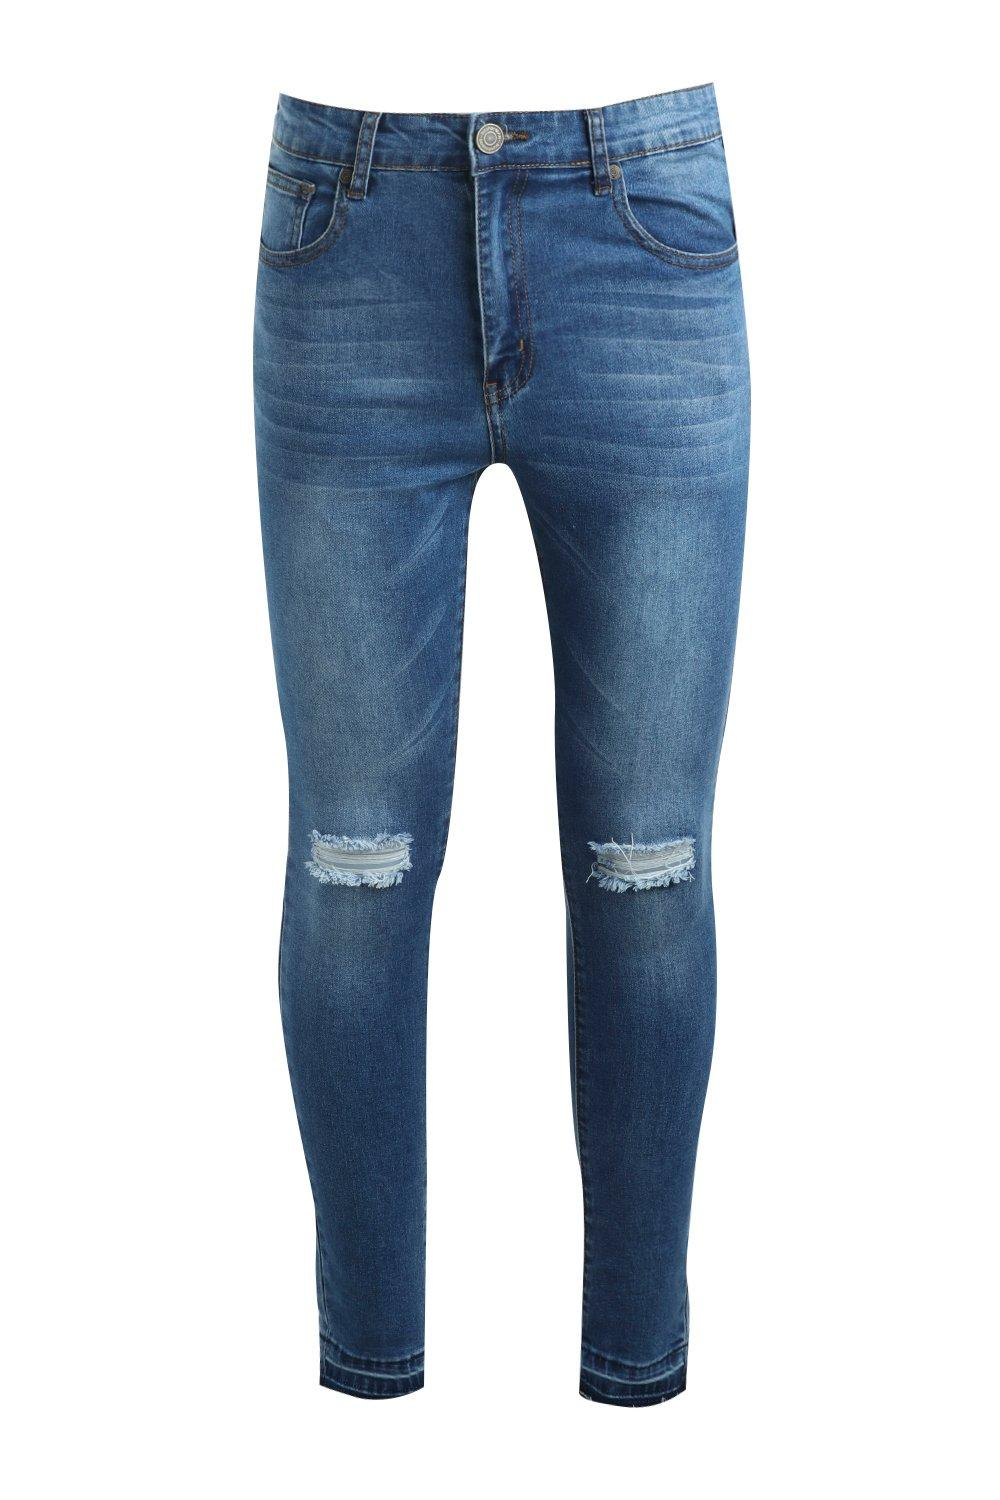 Spray blue mid Edge On Raw Distressed Jeans Skinny r8rPqwFx